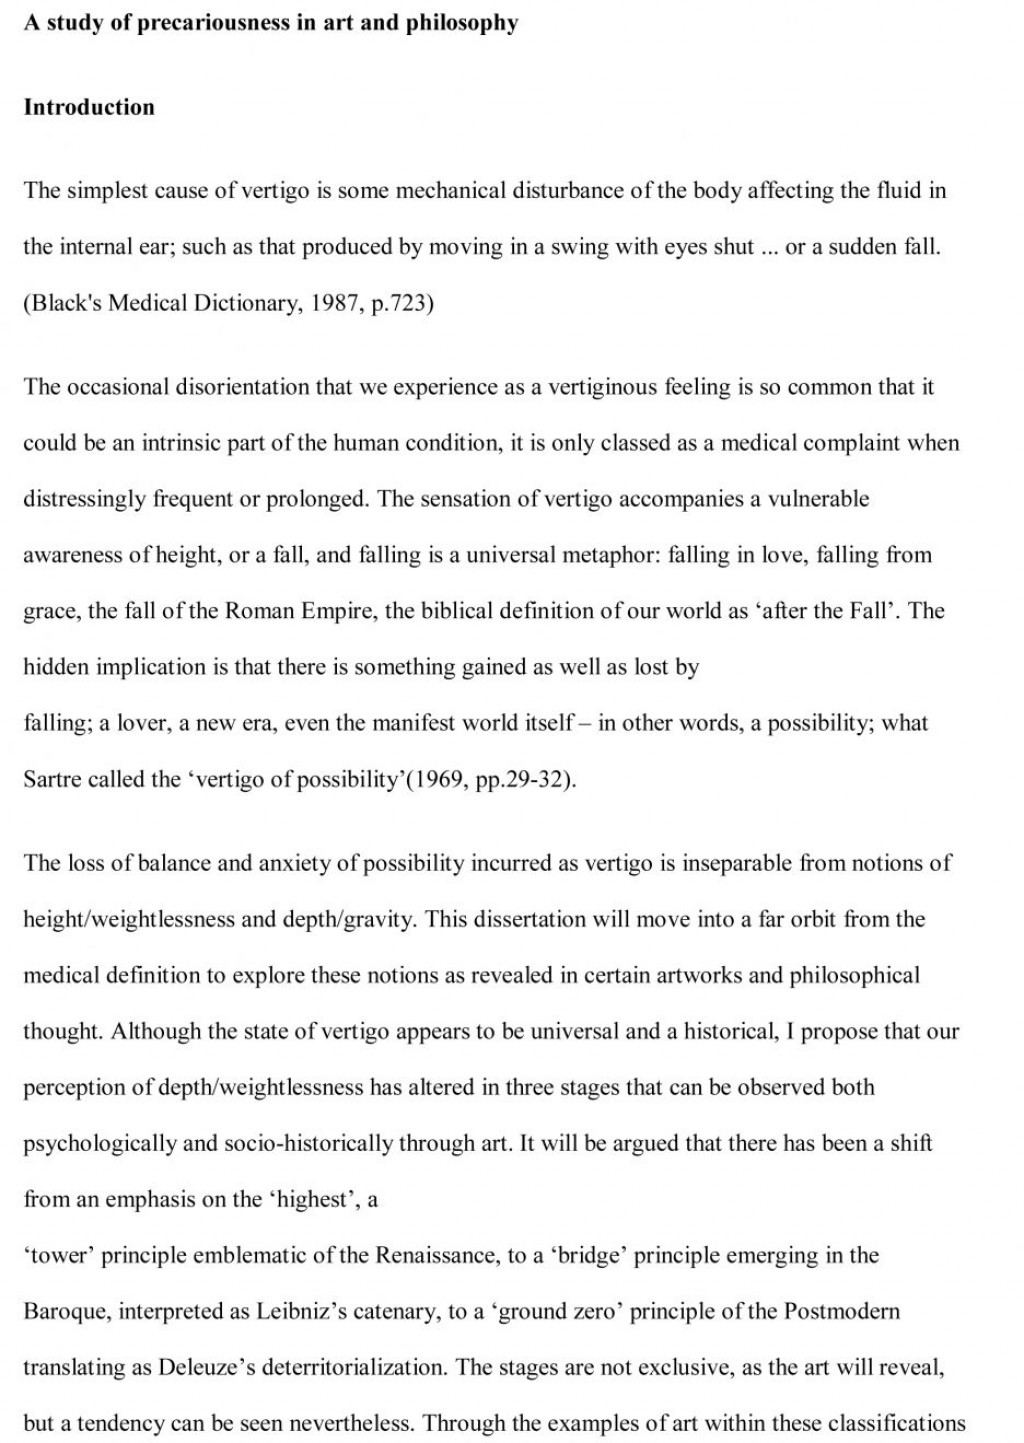 016 Hard Work Essay The Key Success Art Coursework Sample Essays On In Hindi Is To Wikipedia Pays Off Brings Students Life Always Role Of And Dedication 936x1319 Wonderful Urdu Example Large